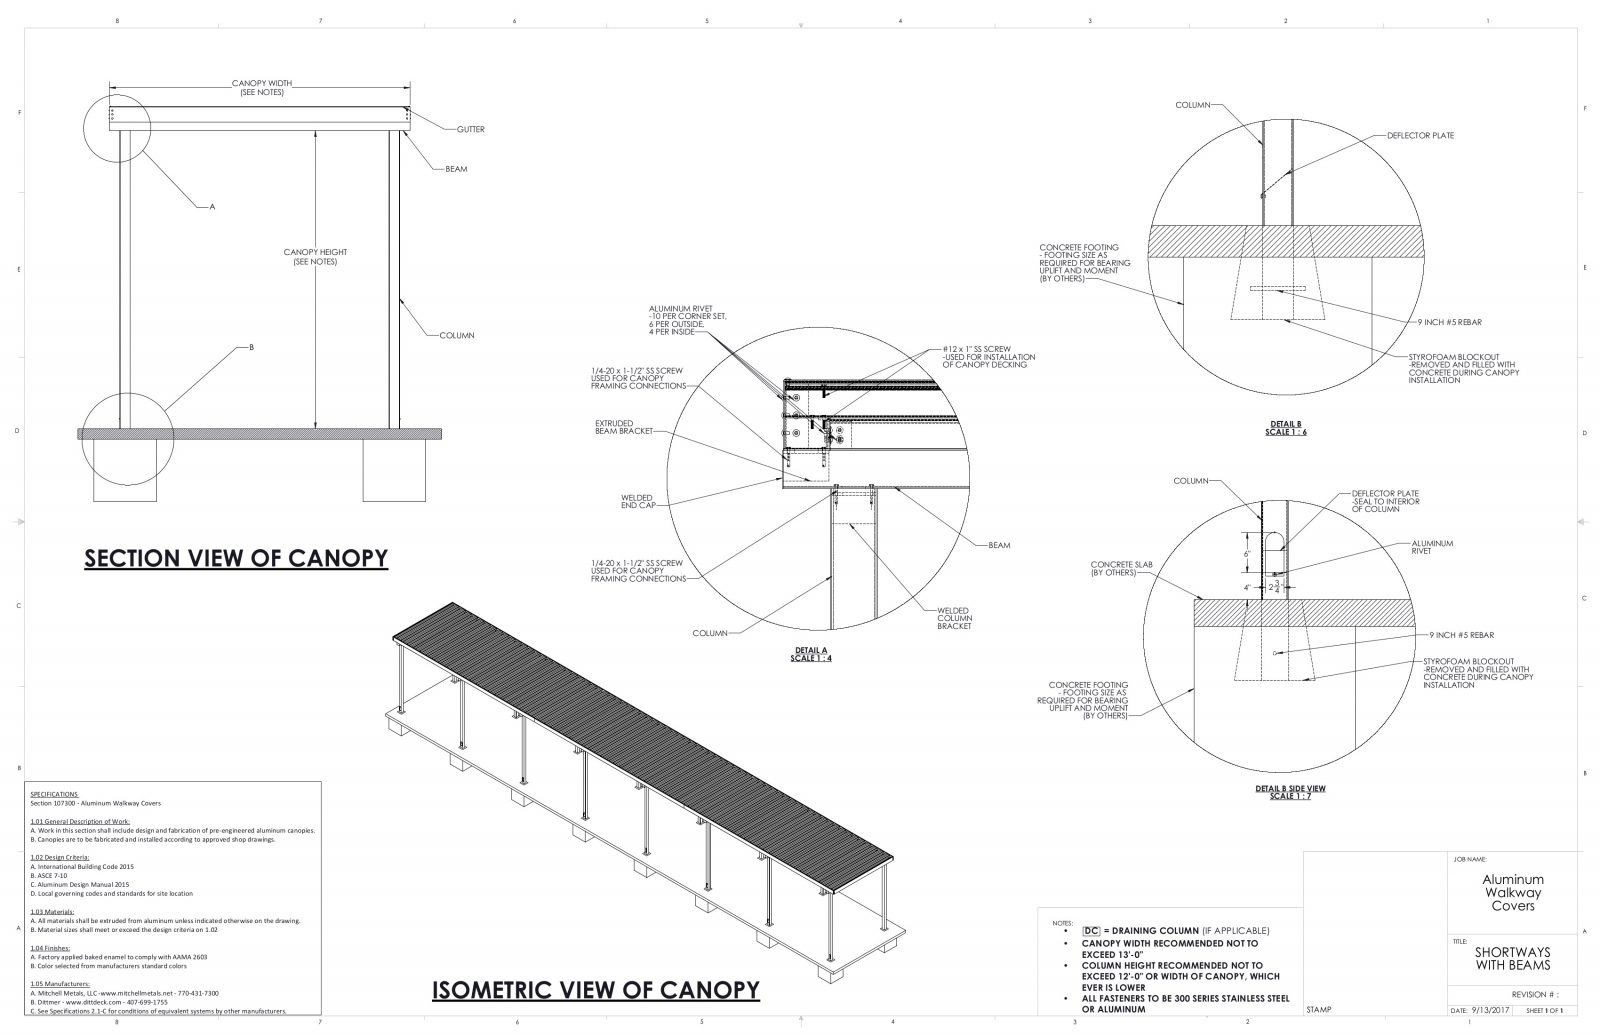 Covered Walkway Canopy Drawings | Specs for Canopies